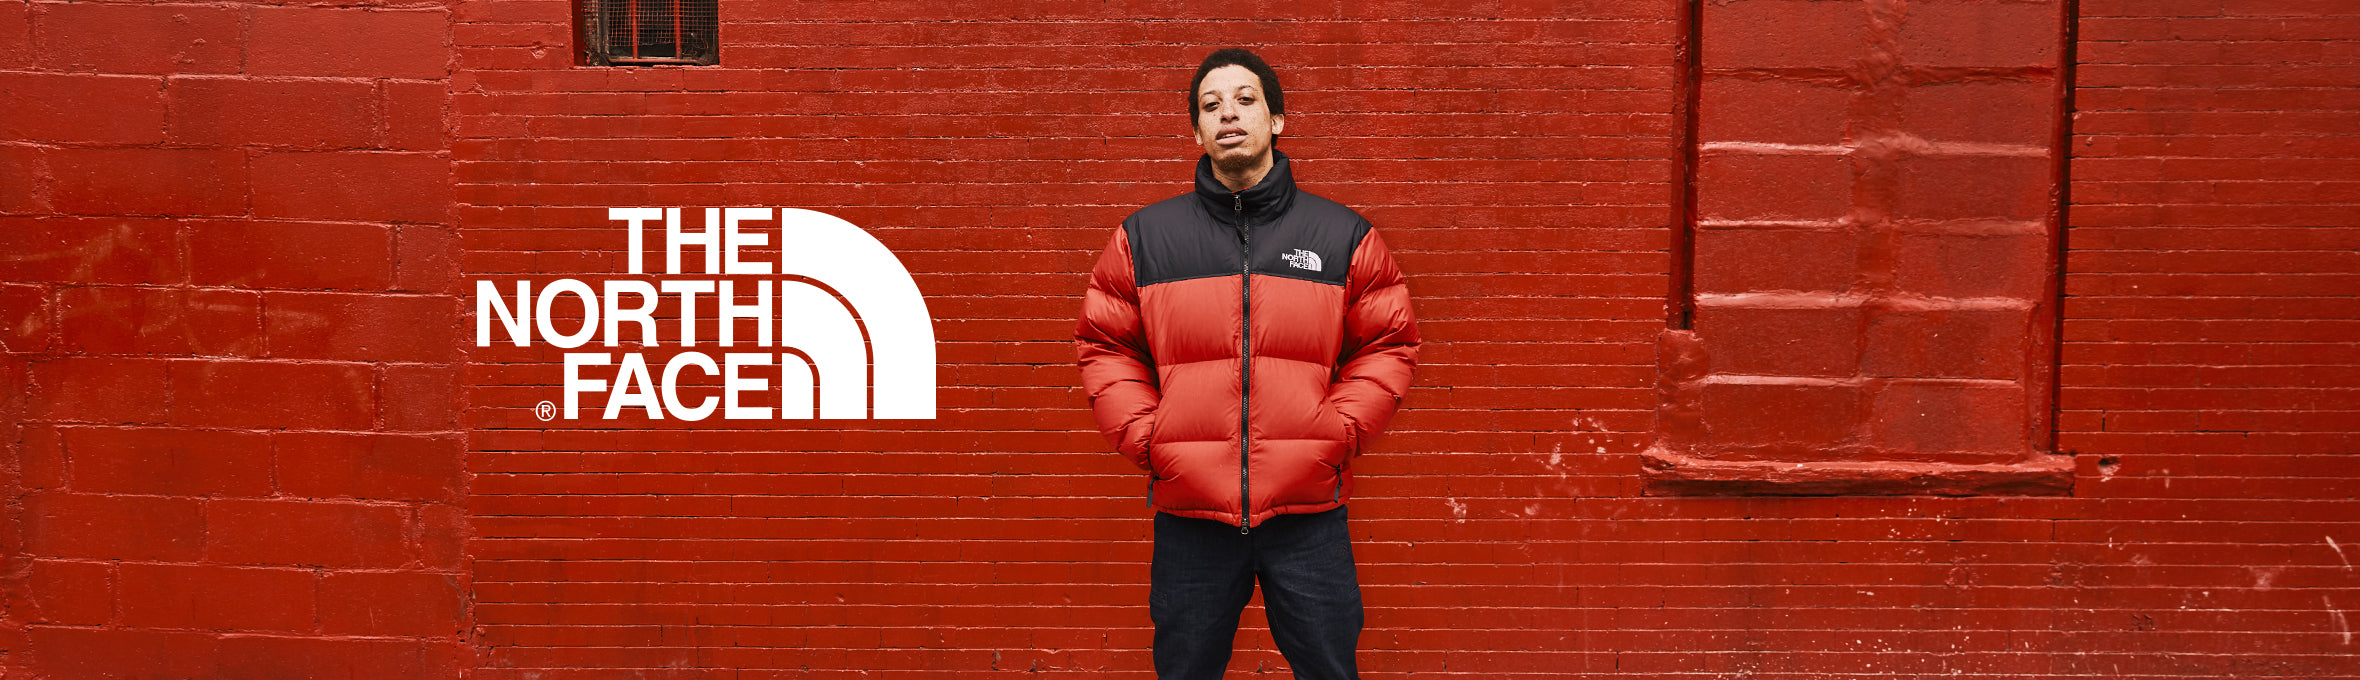 The North Face | Automne-Hiver 2018